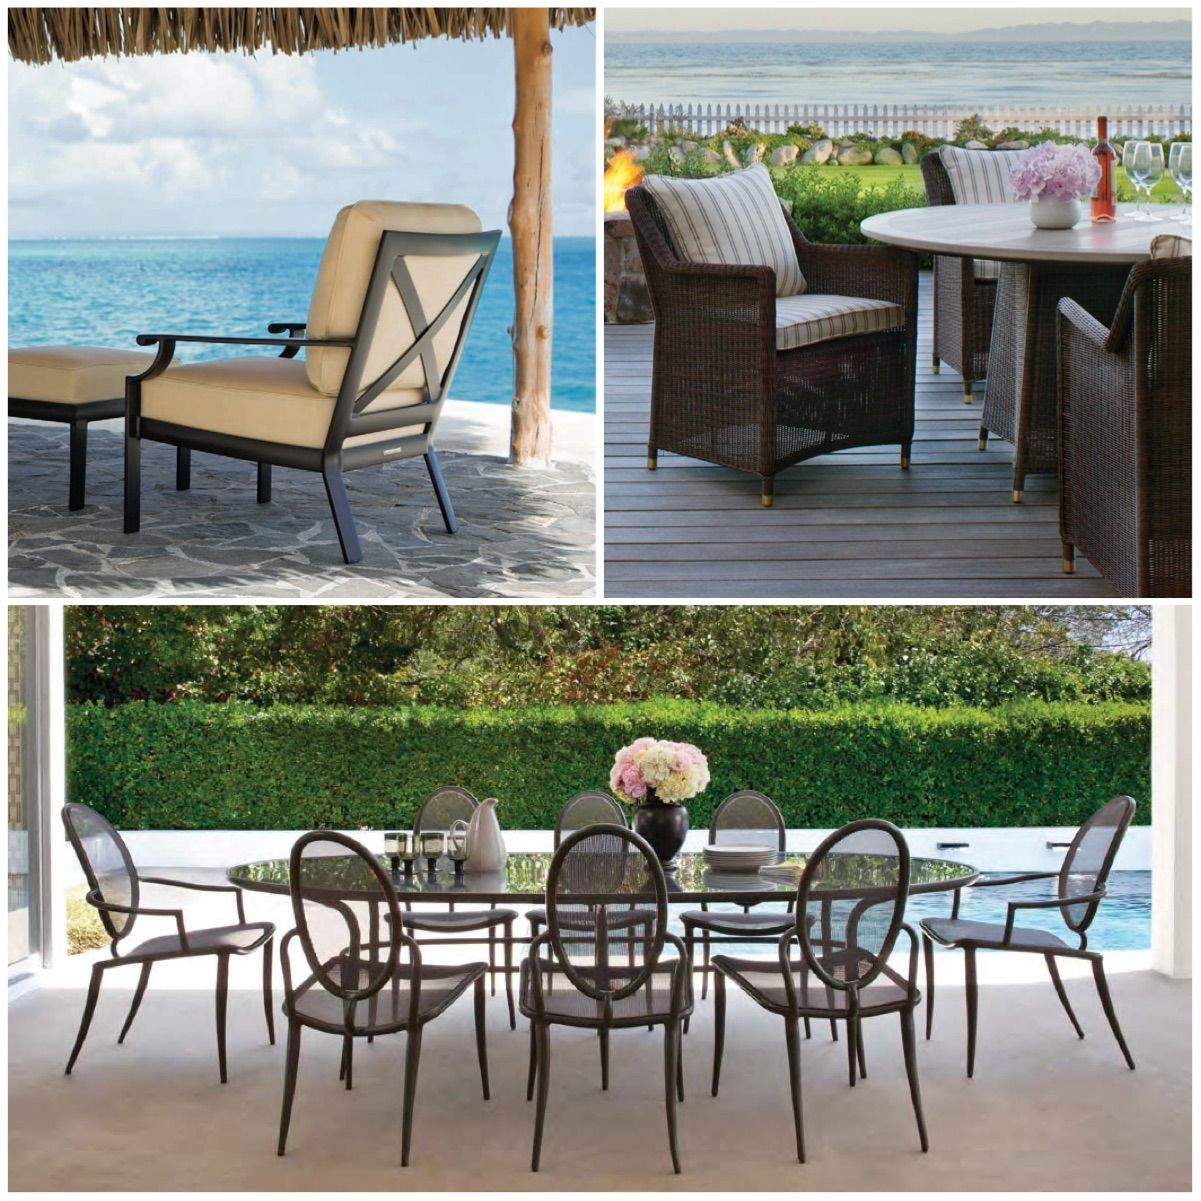 Outdoor furniture collections by brown jordan 50 luxury patio furniture spaces